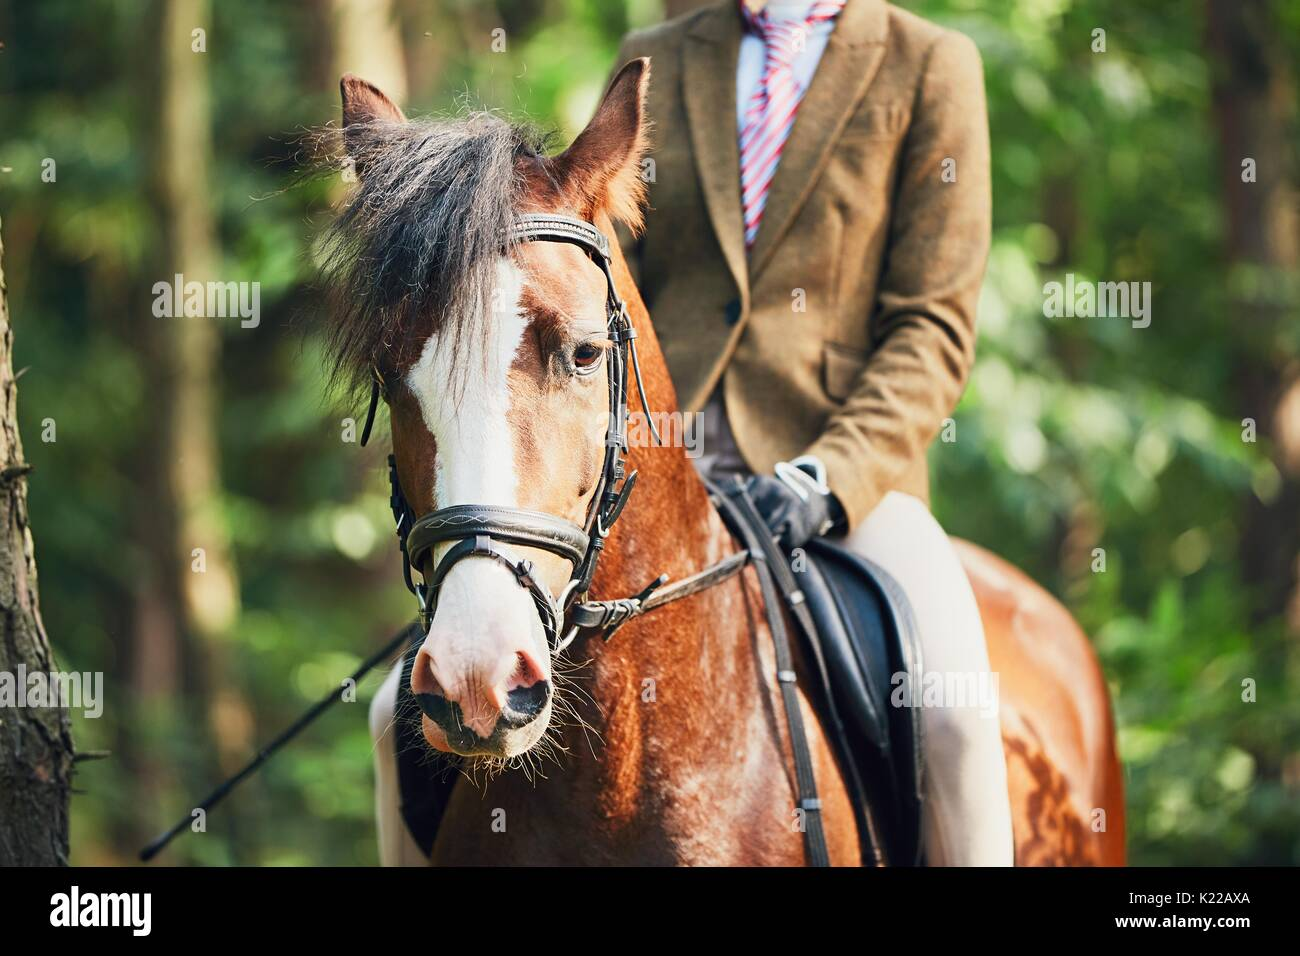 Girl in formal wear riding a horse in forest. - Stock Image